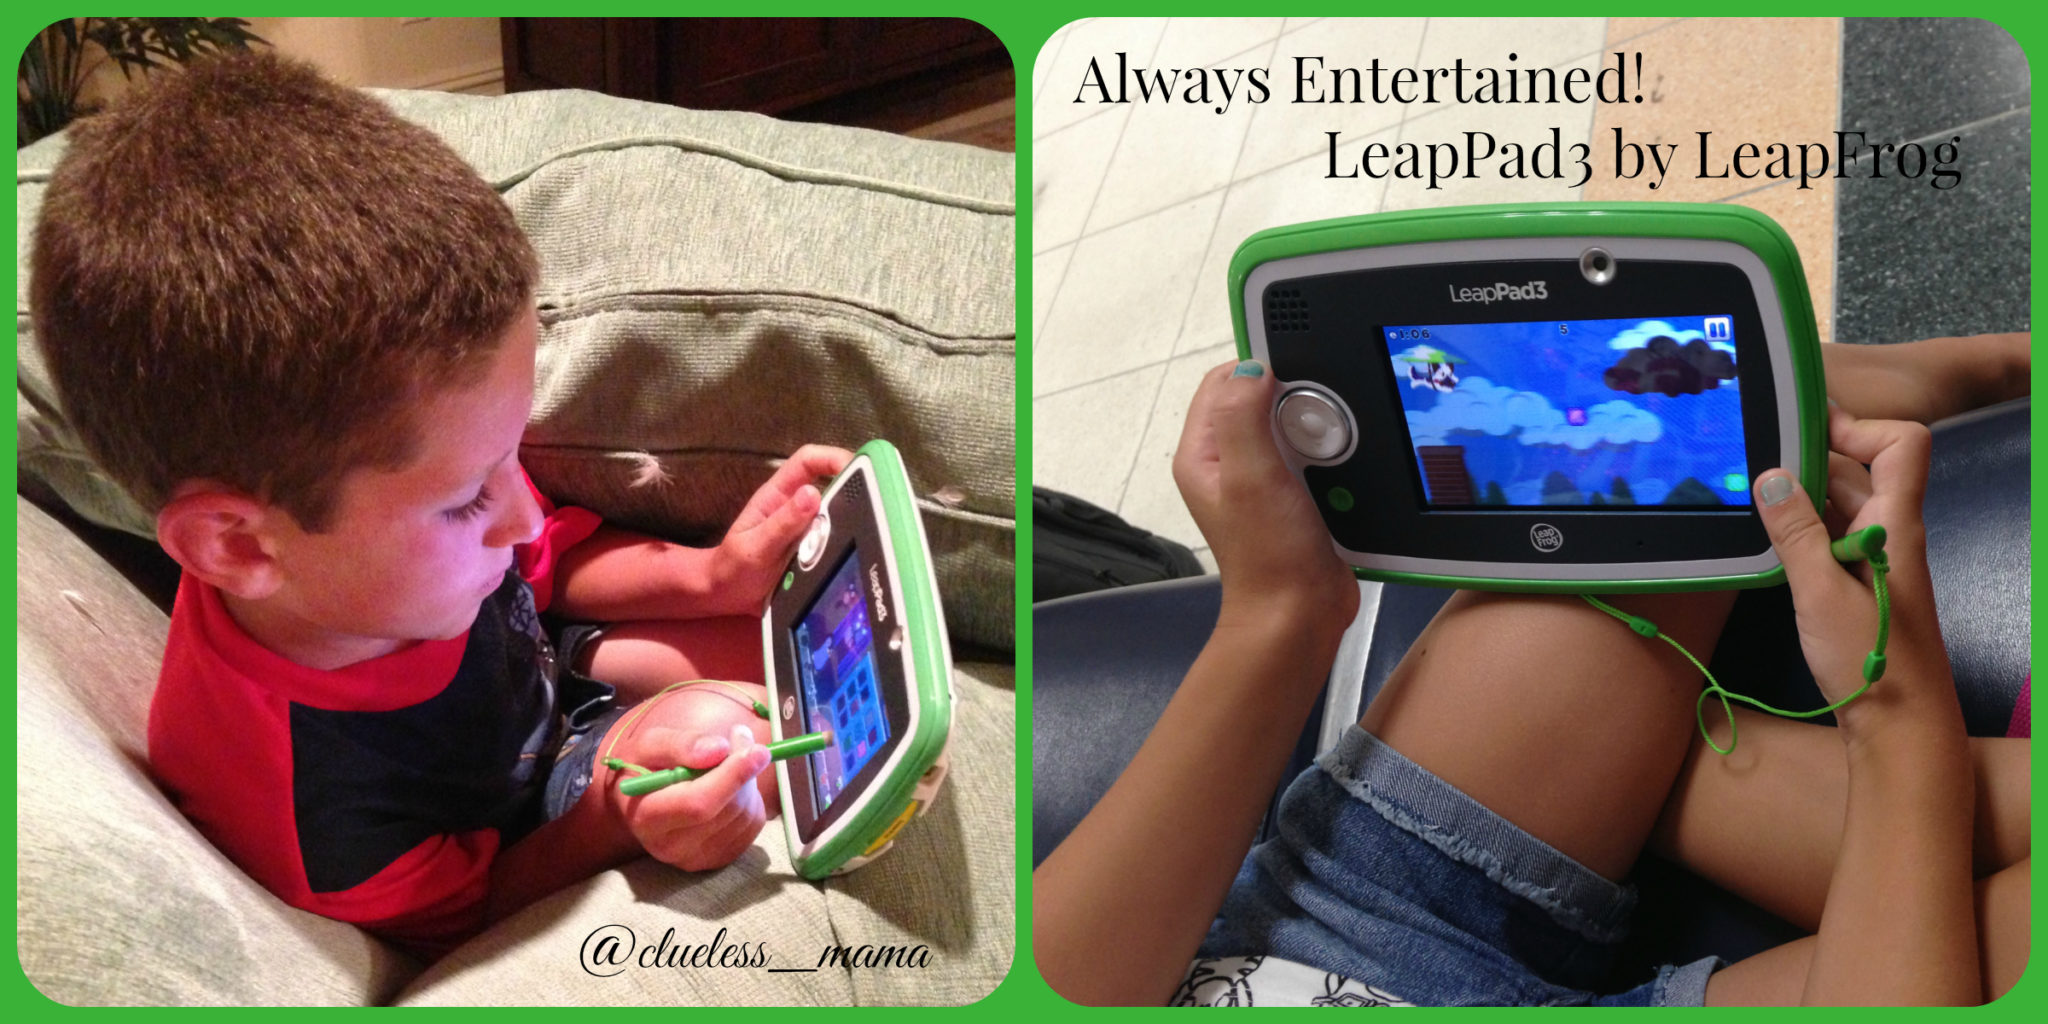 LeapPad3: Entertainment and Education Rolled into One